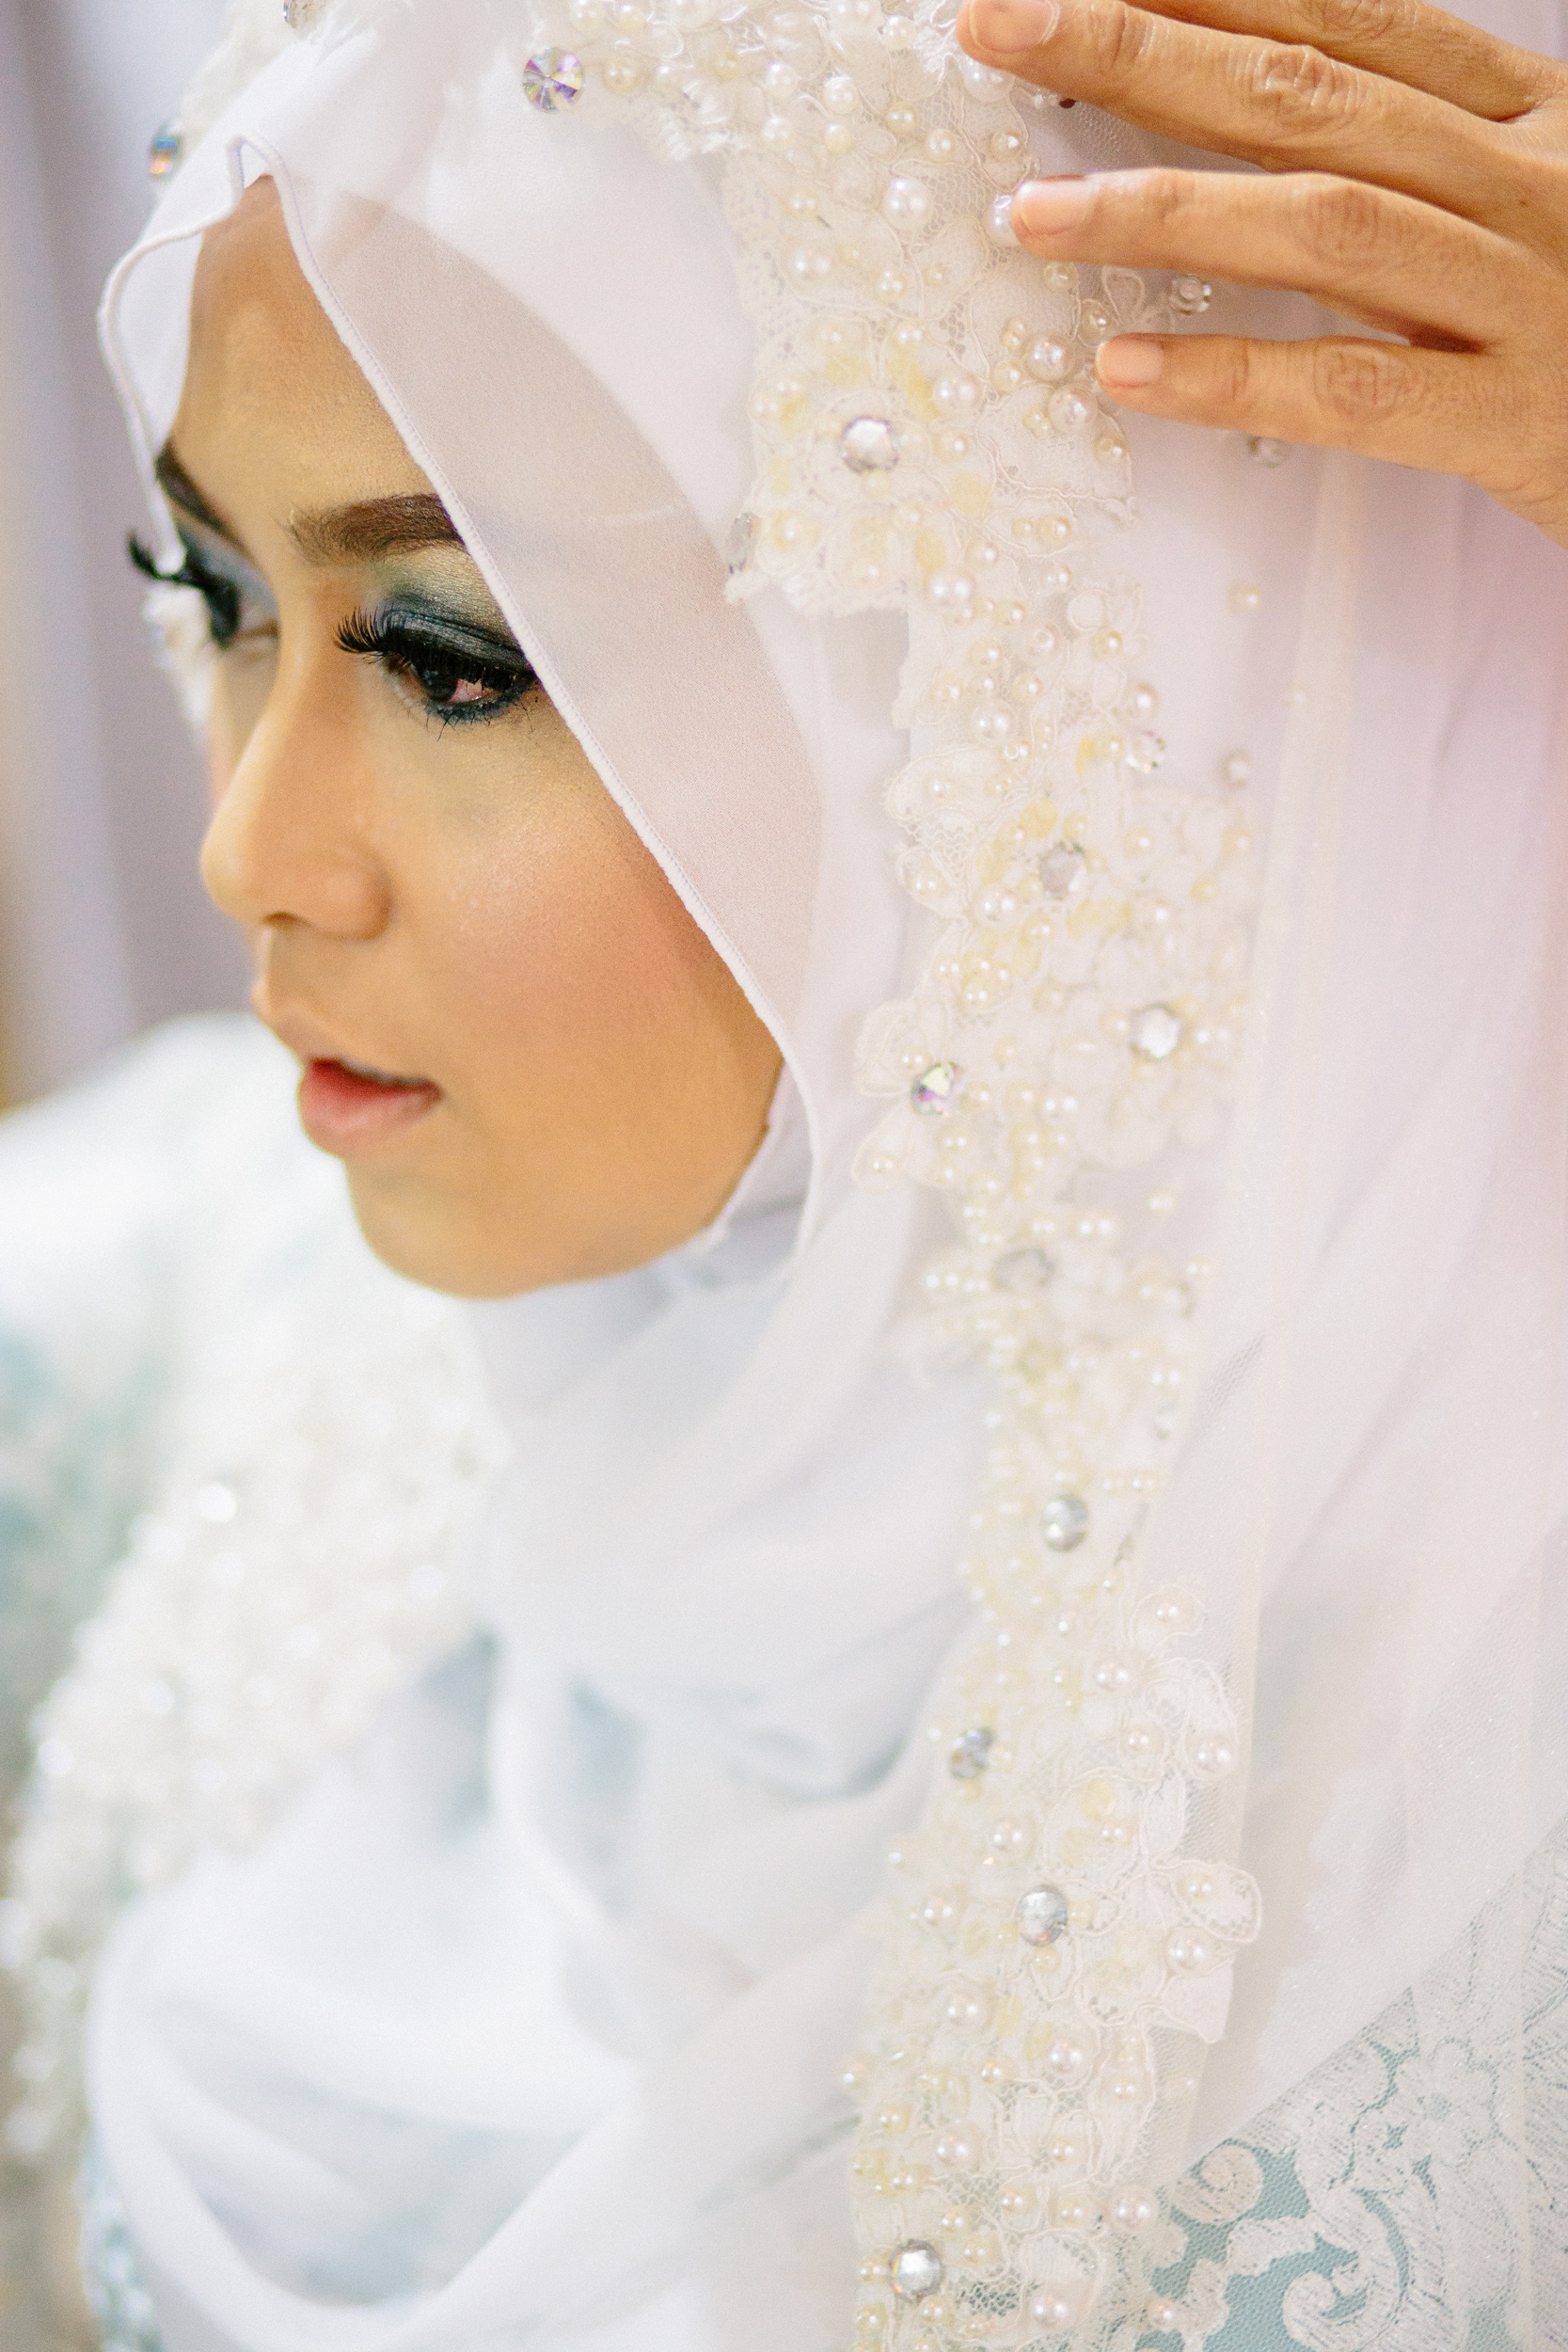 singapore-wedding-photographer-wemadethese-aisyah-helmi-08.jpg